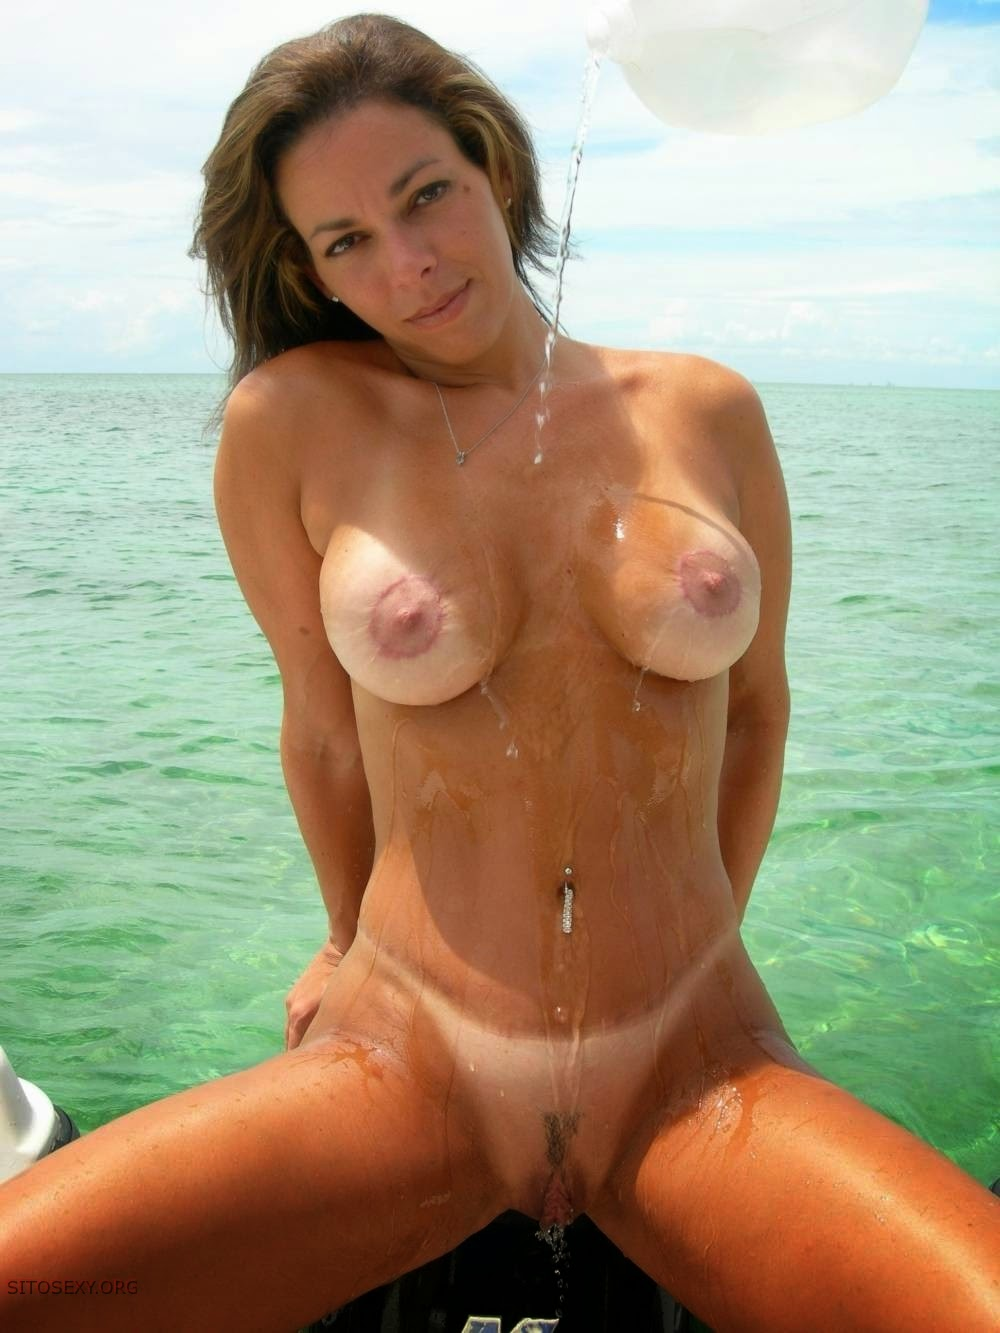 Excited too Foto Sexy done mature nude nel mare can